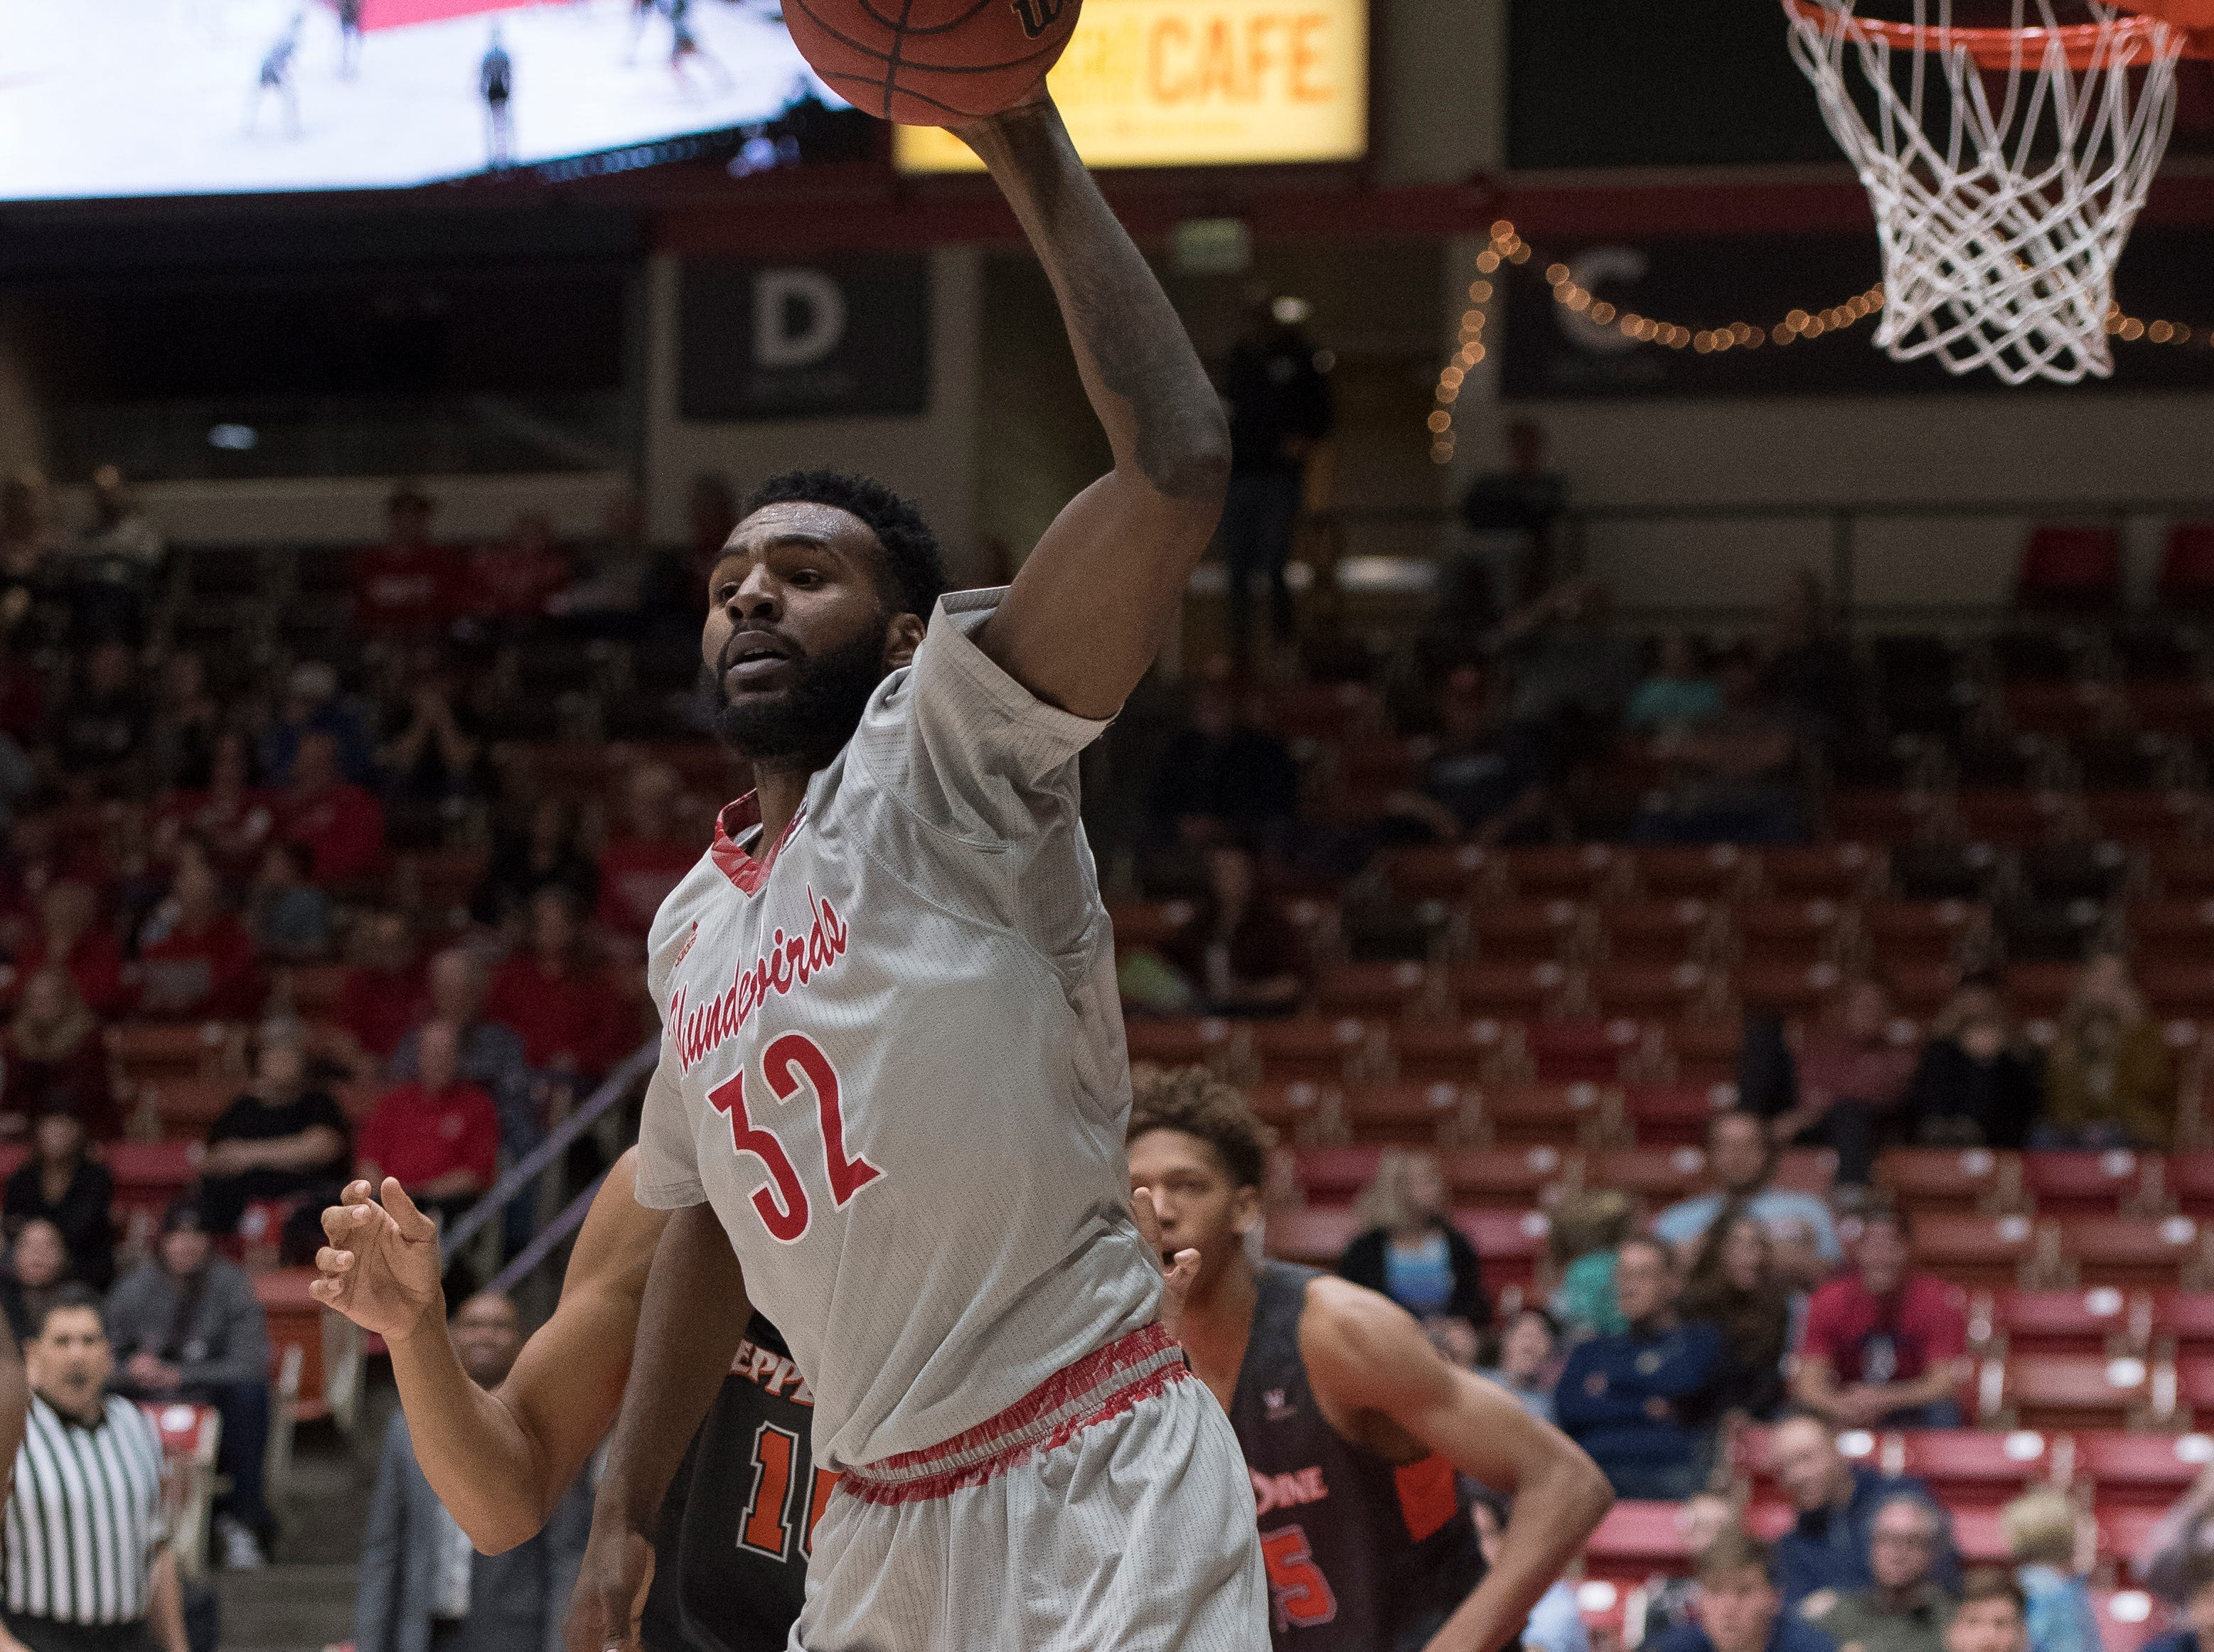 Southern Utah University junior Andre Adams (32) catches a high pass during the game against Pepperdine University in the America First Event Center Saturday, December 15, 2018. SUU won in overtime, 78-69.